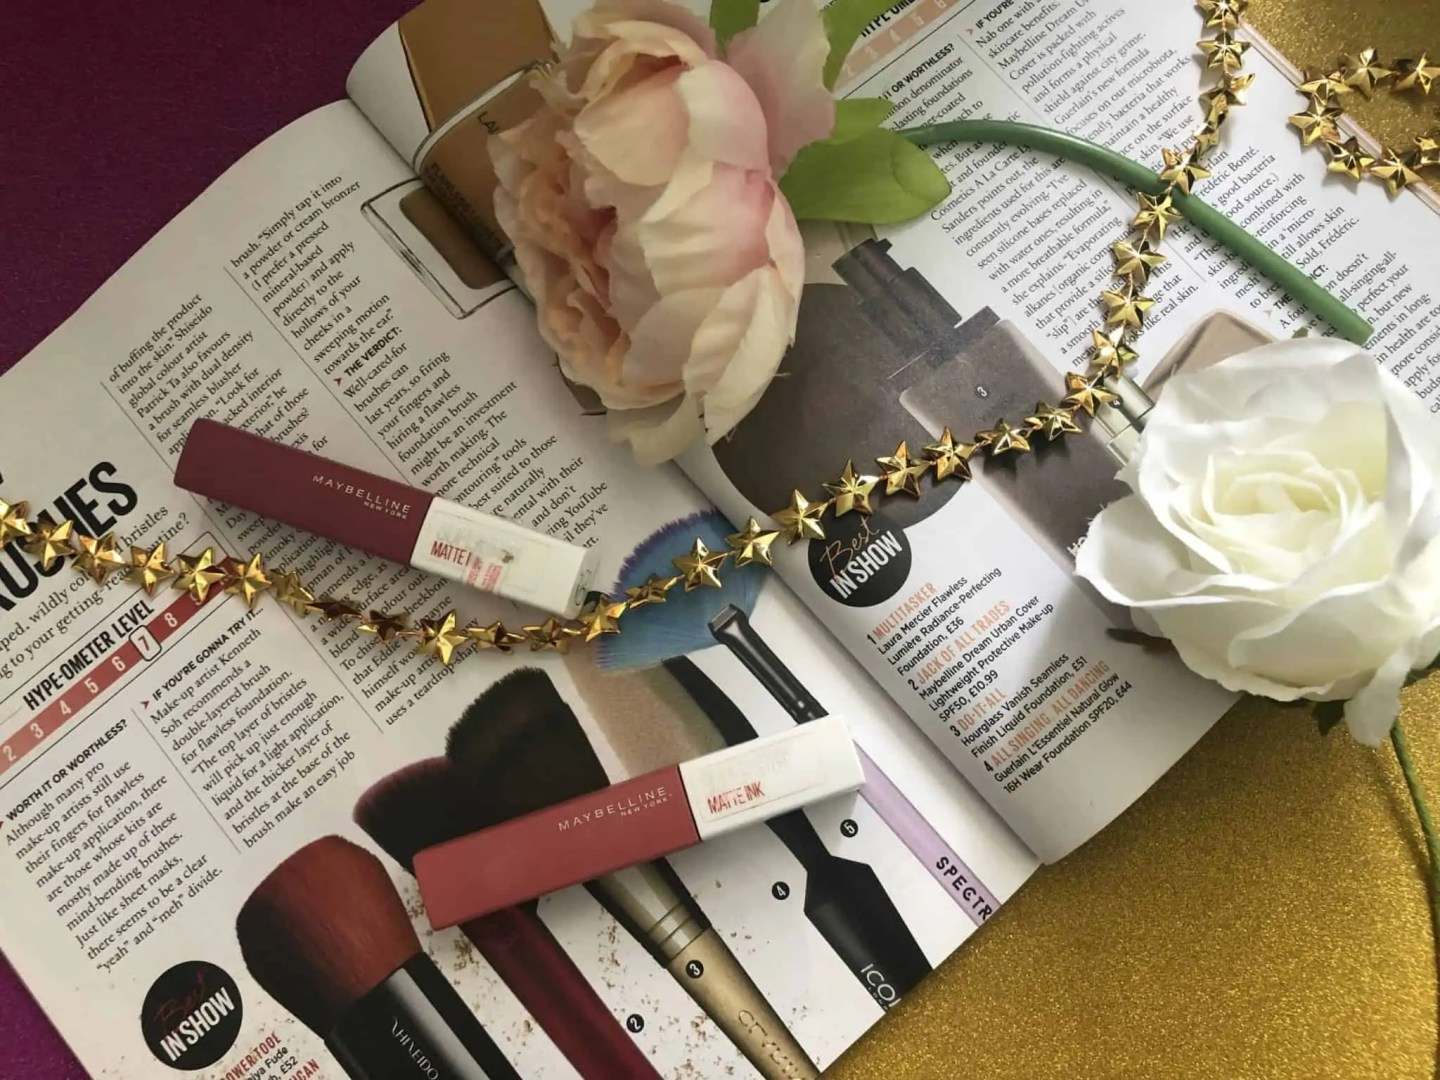 Weekly favourites Five things I'm loving this week maybelline matte ink lipsticks